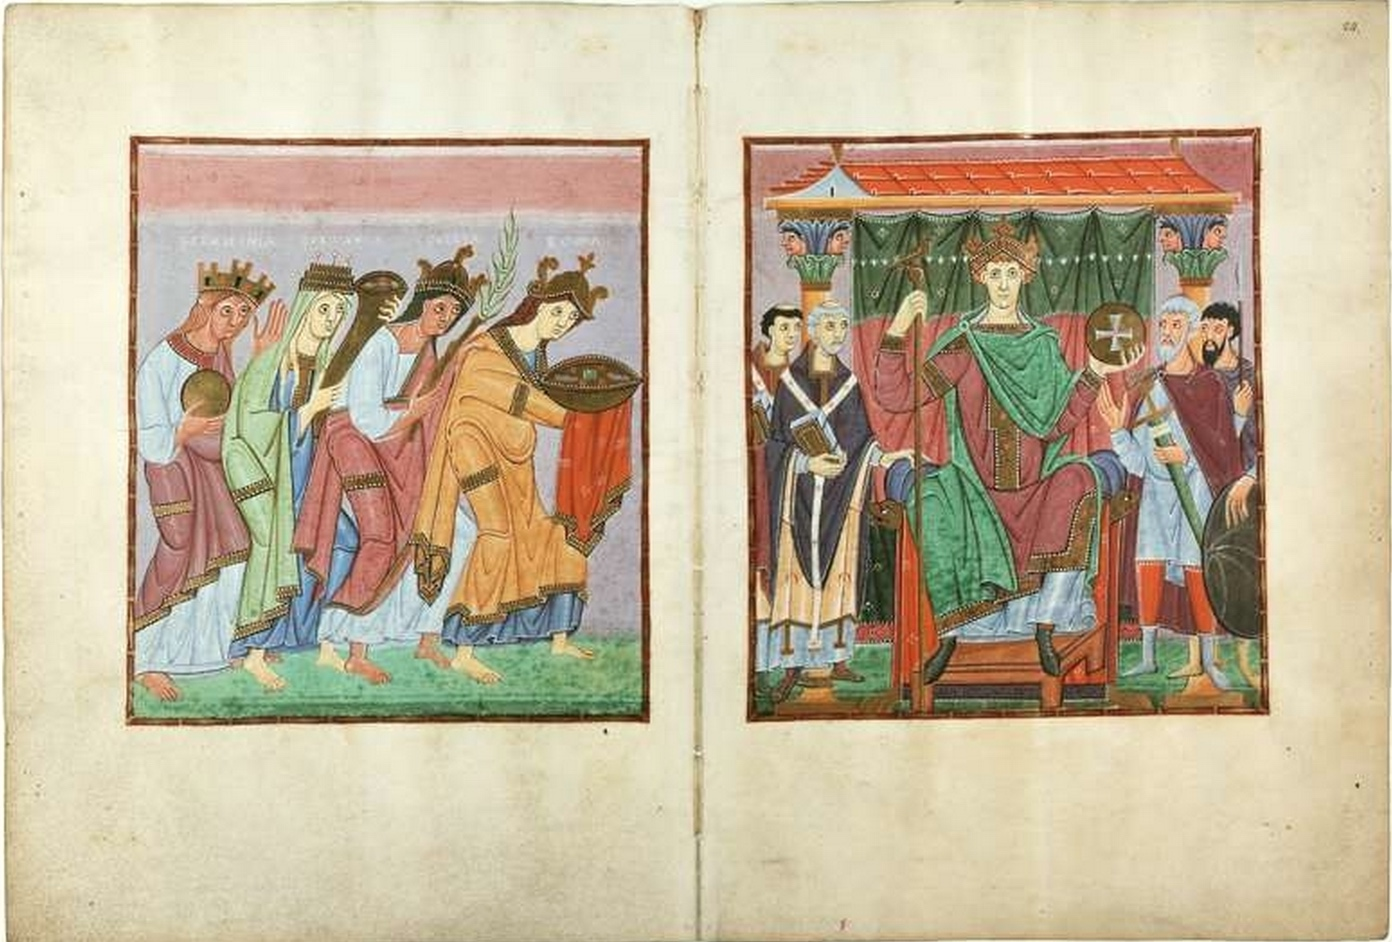 Gospels of Otto III (Munich, Bayerische Stattsbibliothek, Clm.4453), Ruler portrait of Otto III (f.24) and Provinces Bringing Tribute (f.23v.)